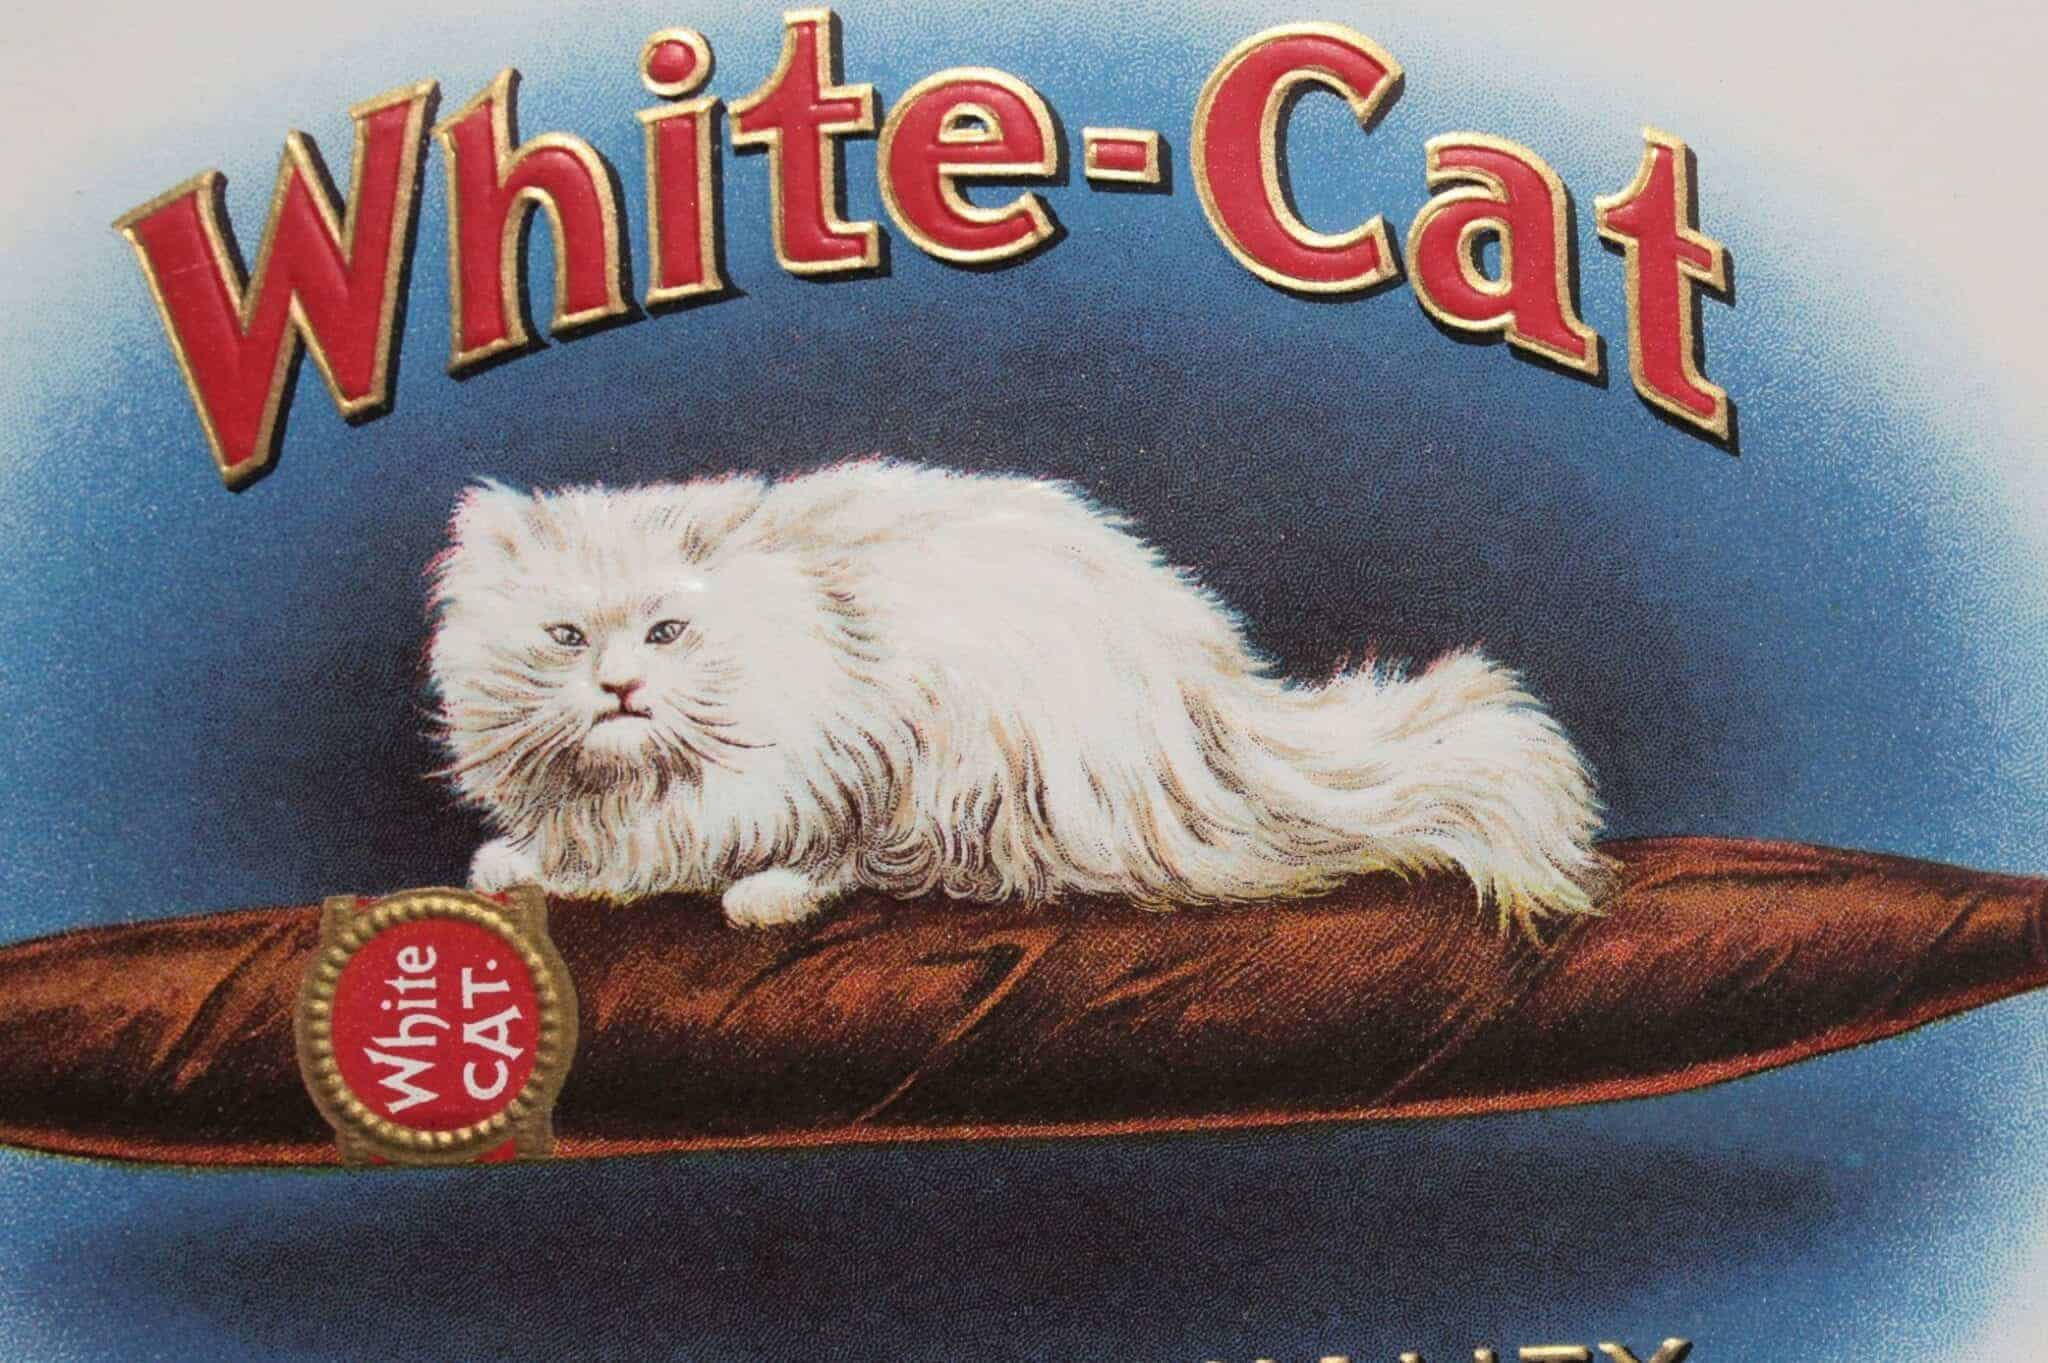 Label Cigar Box White Cat Cigars Original Lithograph 1920 S Nos Antique Antigo Trunk